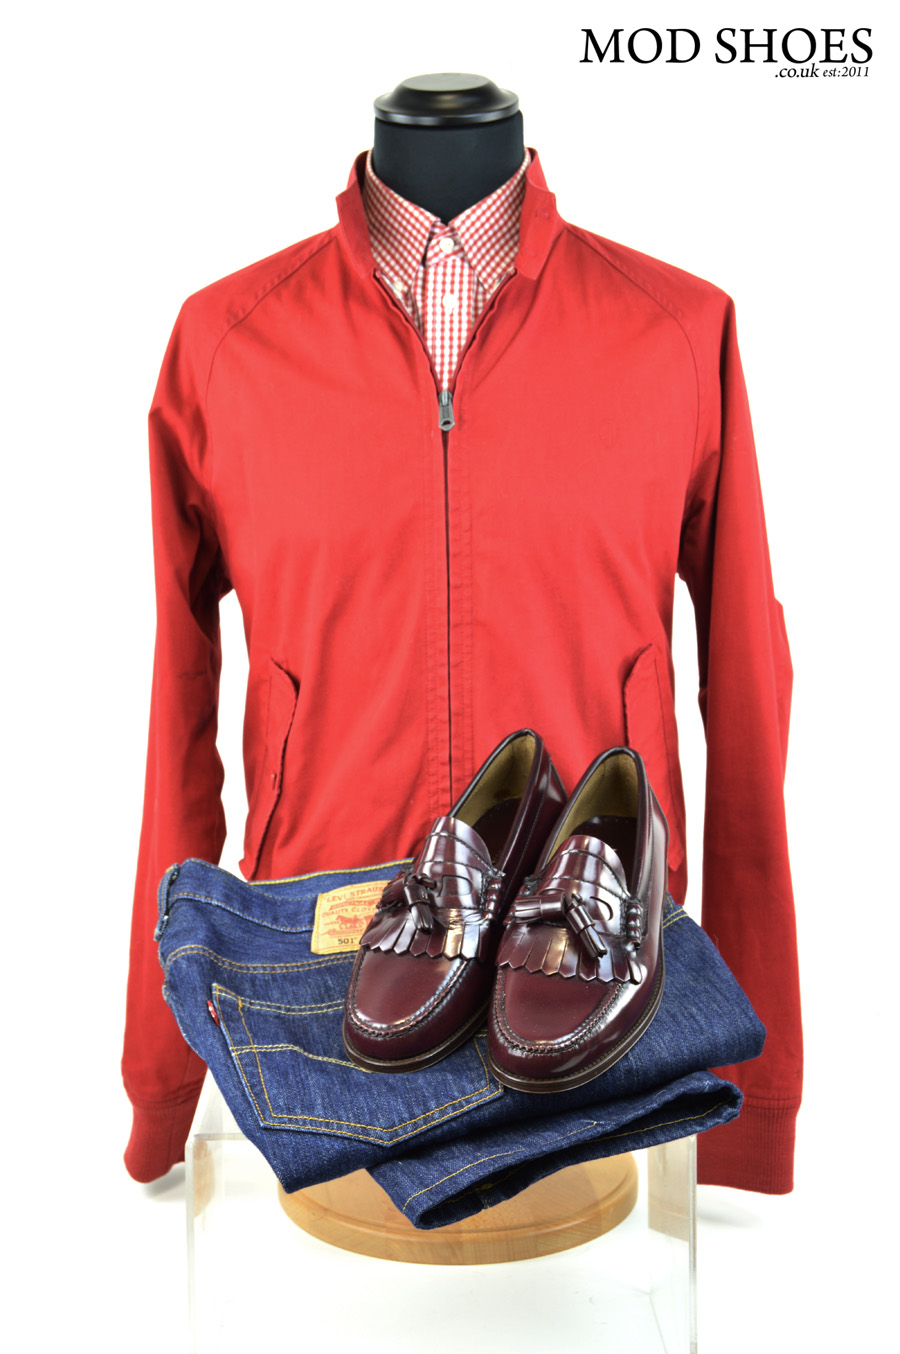 modshoes oxblood burgundy tassel loafers with jeans and harrington